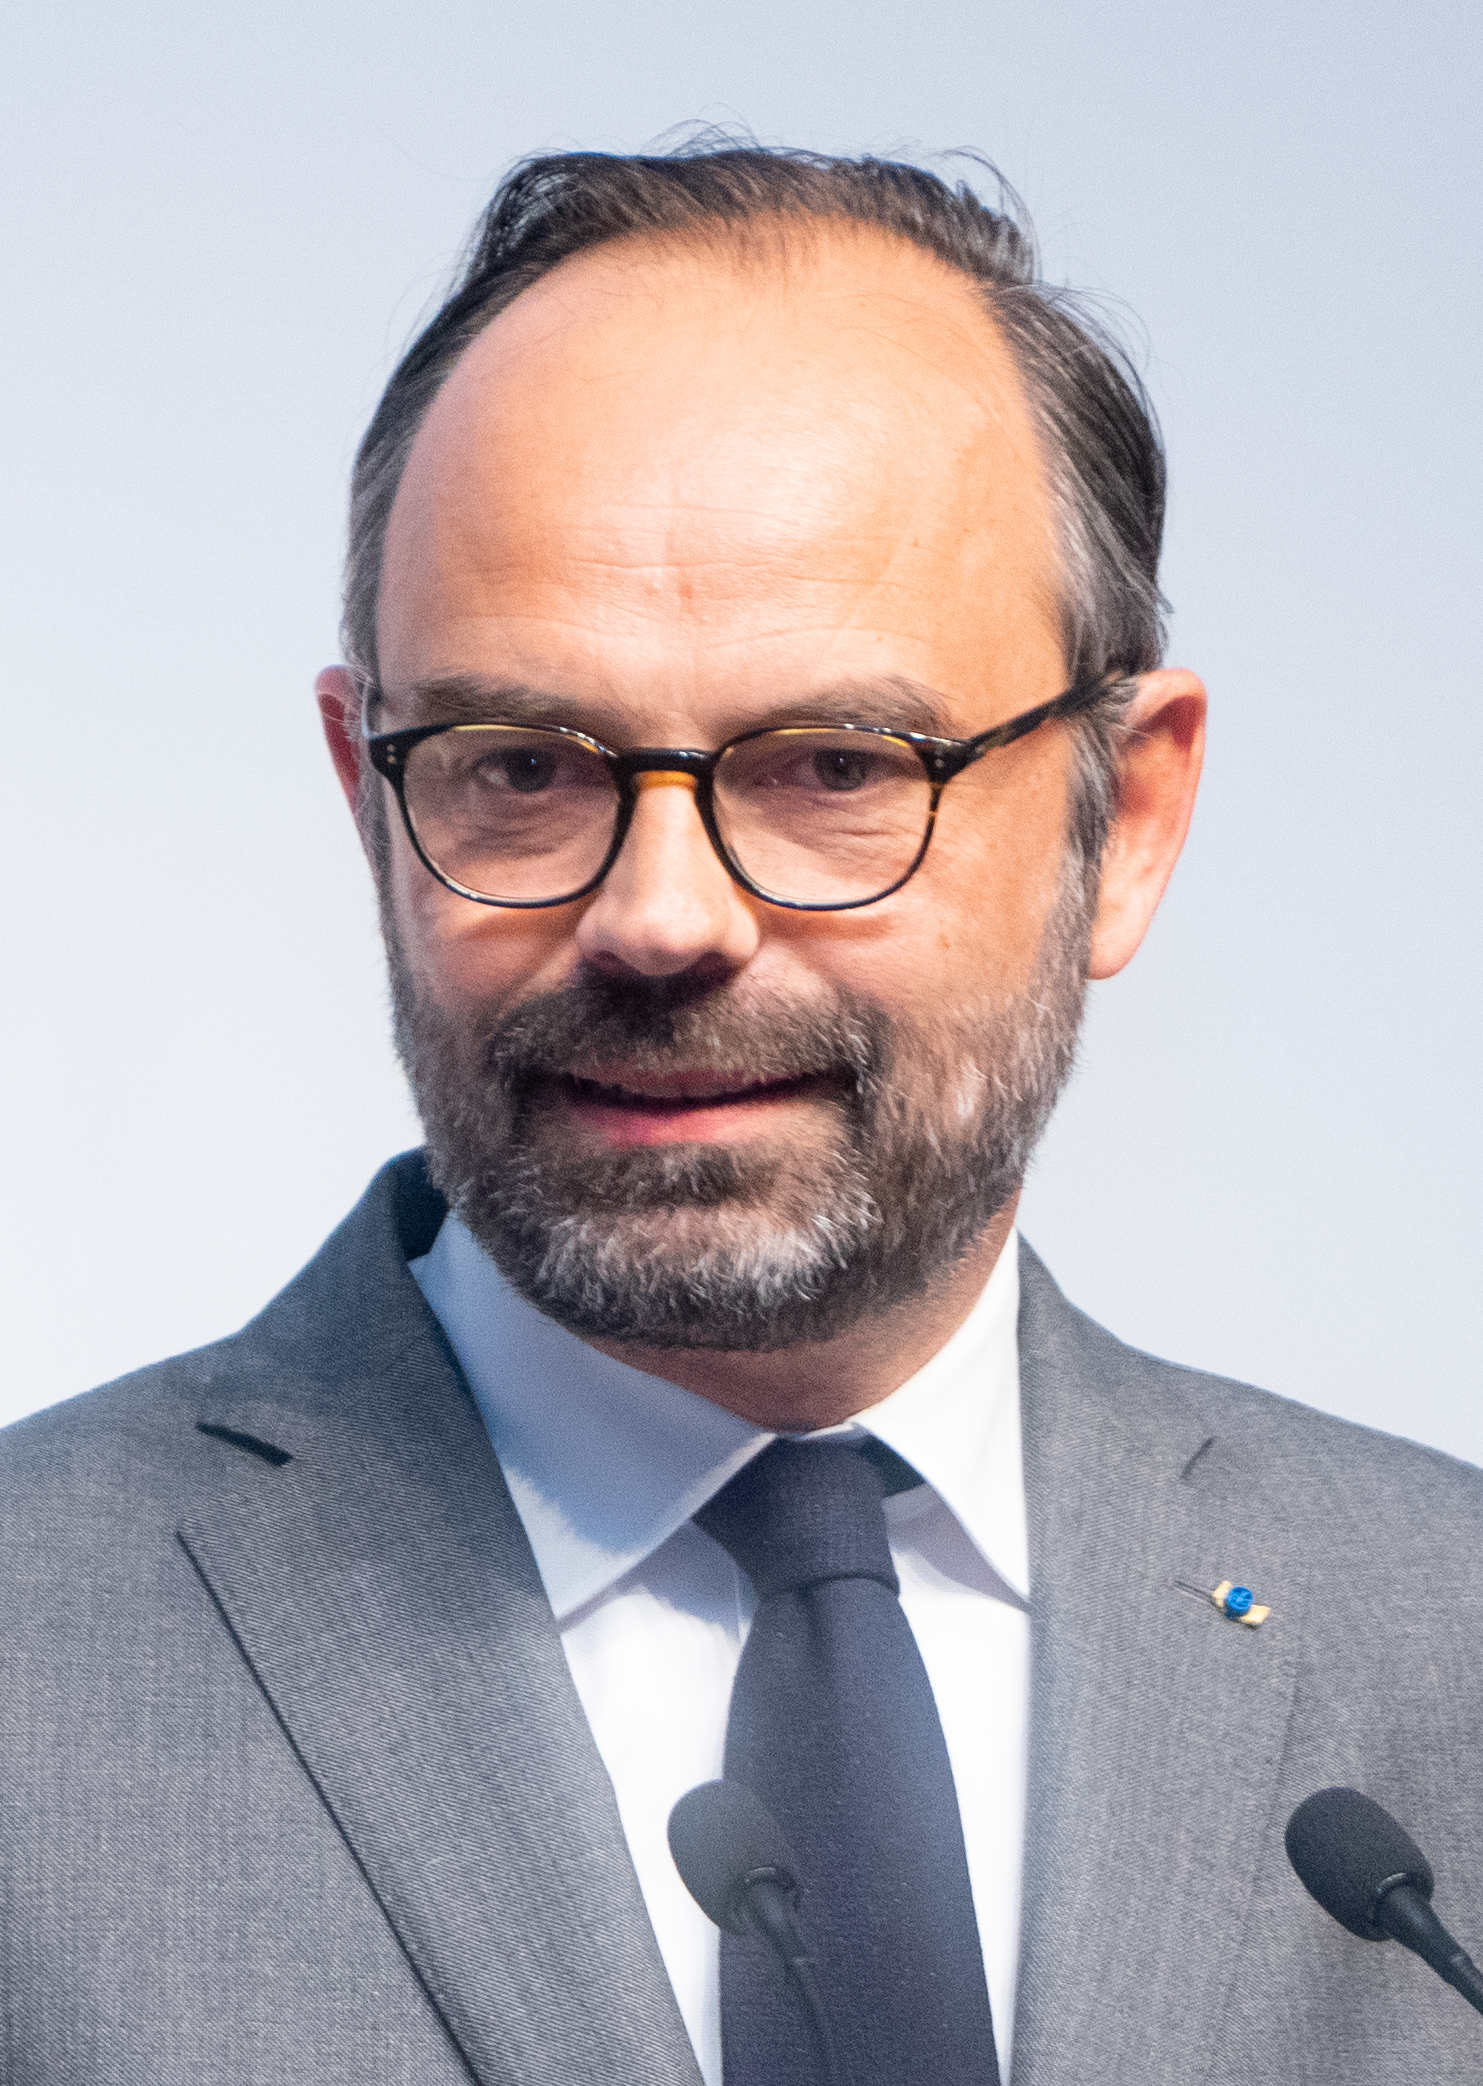 voter pour Edouard Philippe